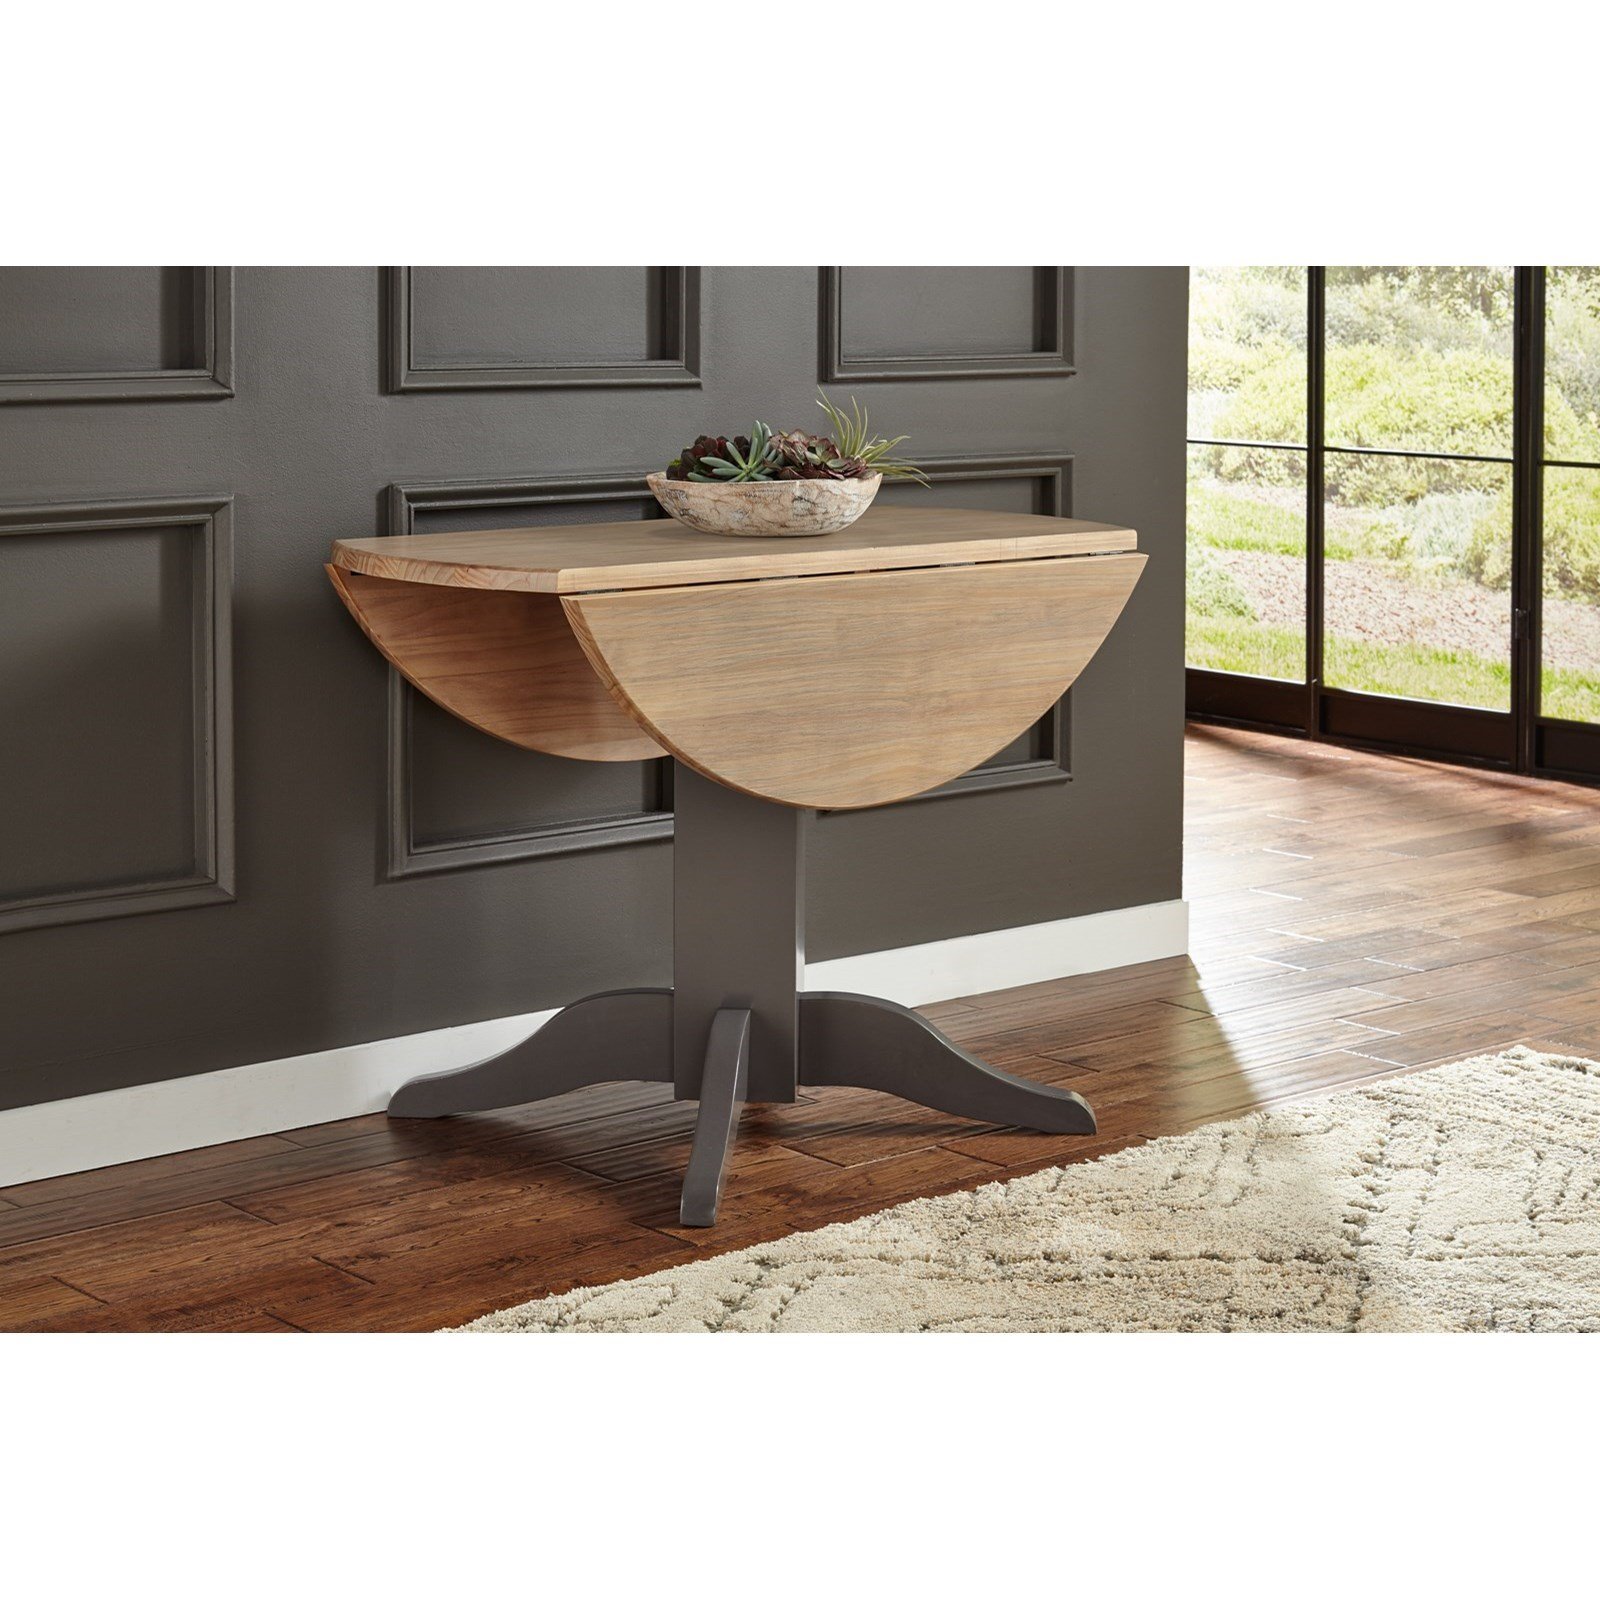 """Port Townsend 42"""" Drop Leaf Table by A-A at Walker's Furniture"""